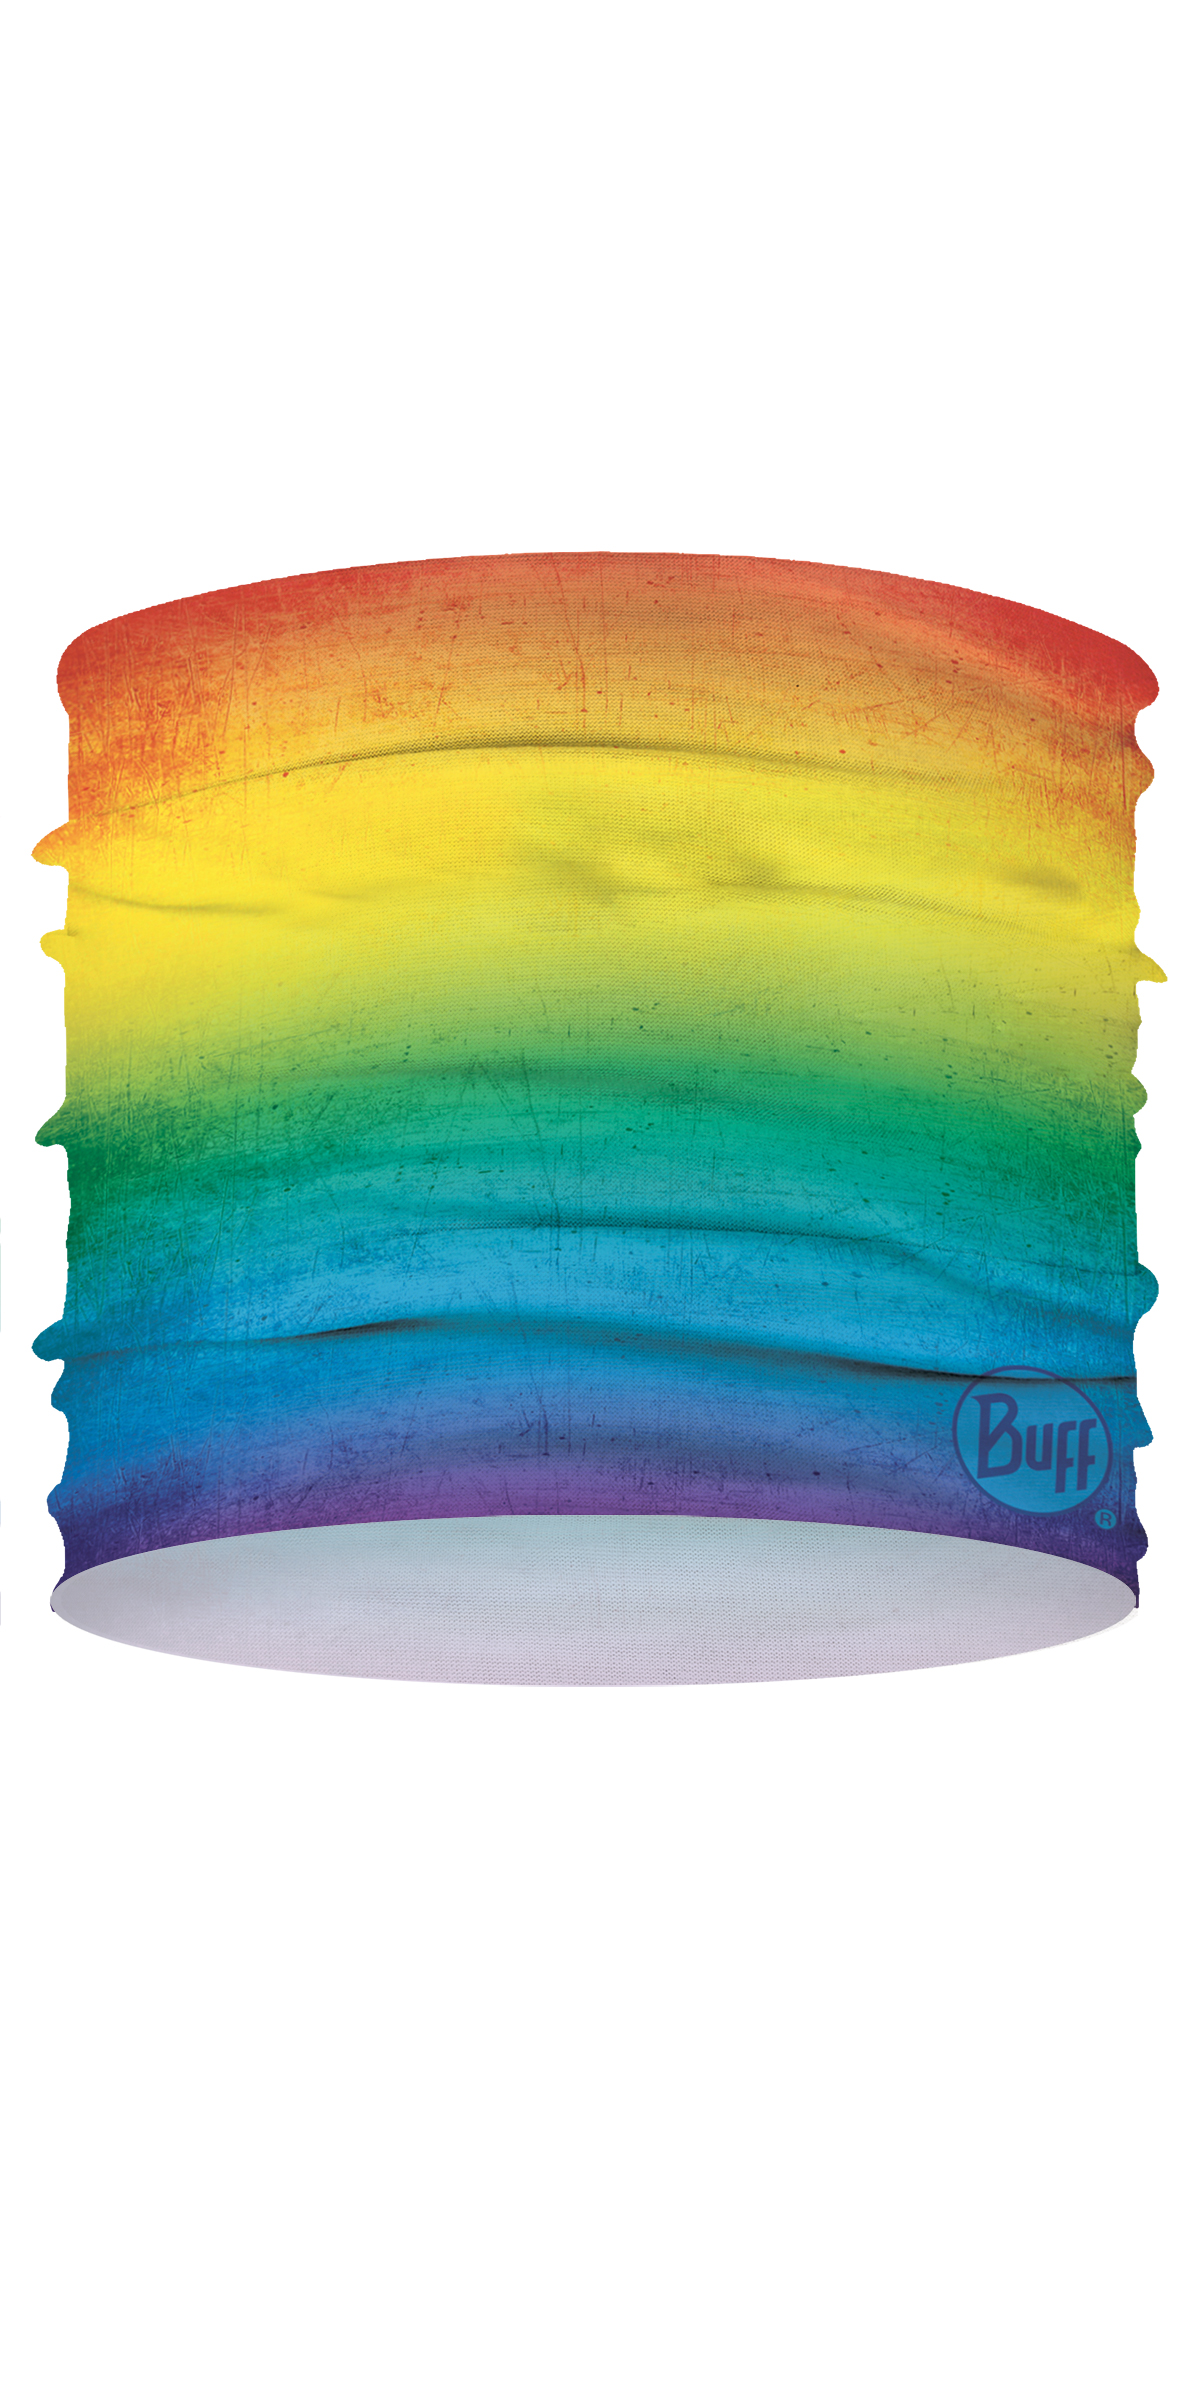 CoolNet UV+ Multifunctional Headband - Pride